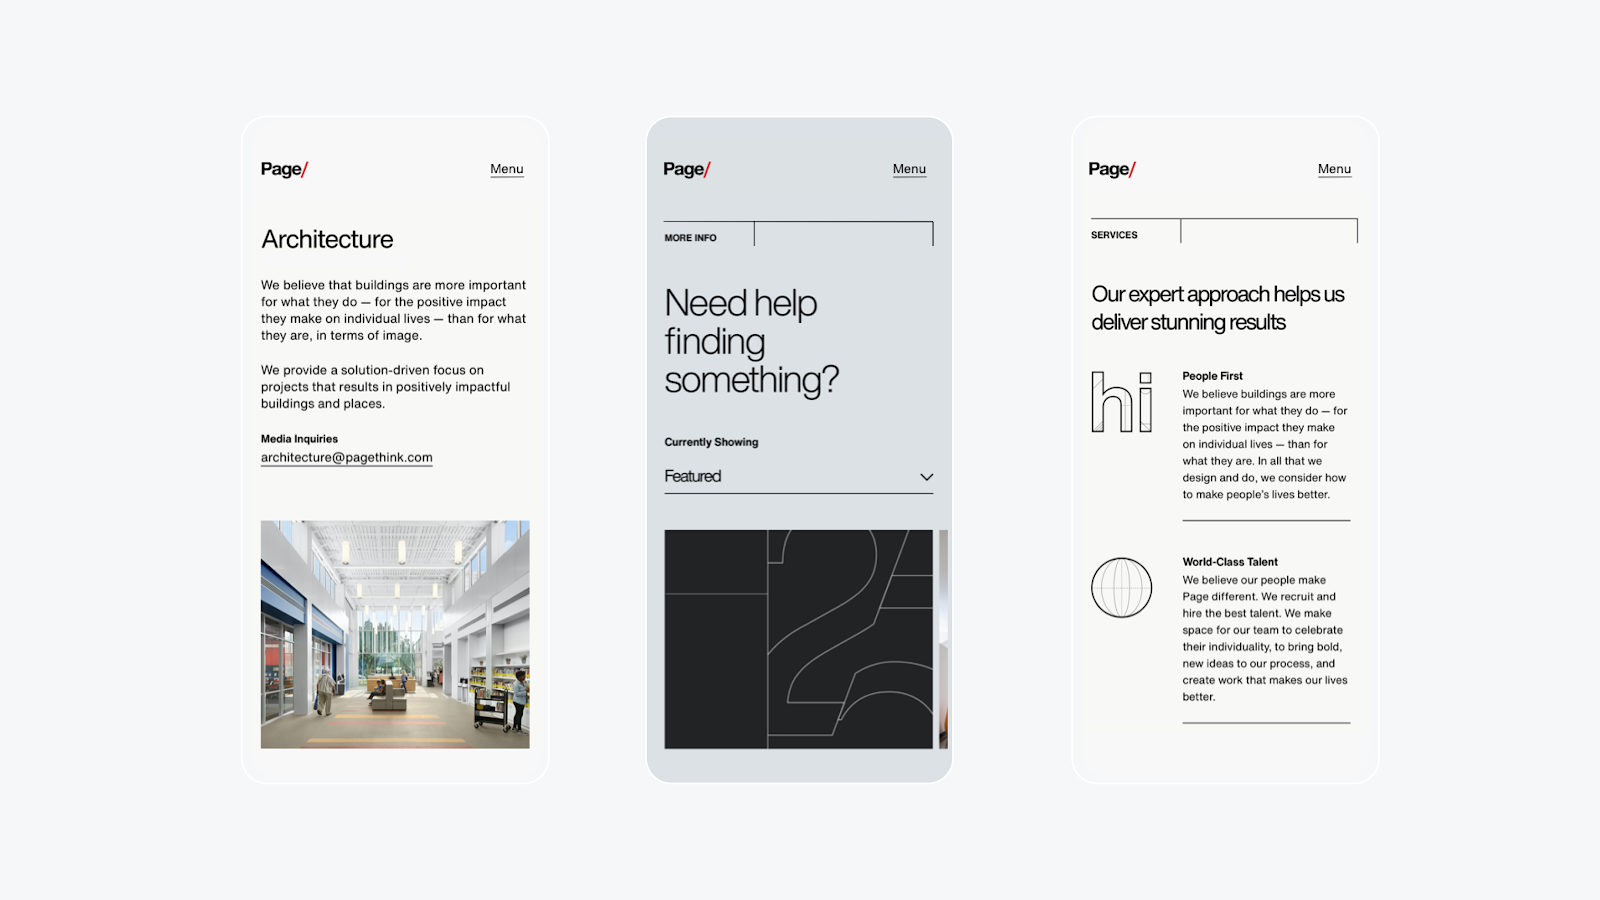 Handsome New Foundation for Global Architecture Firm, Page — Case Study